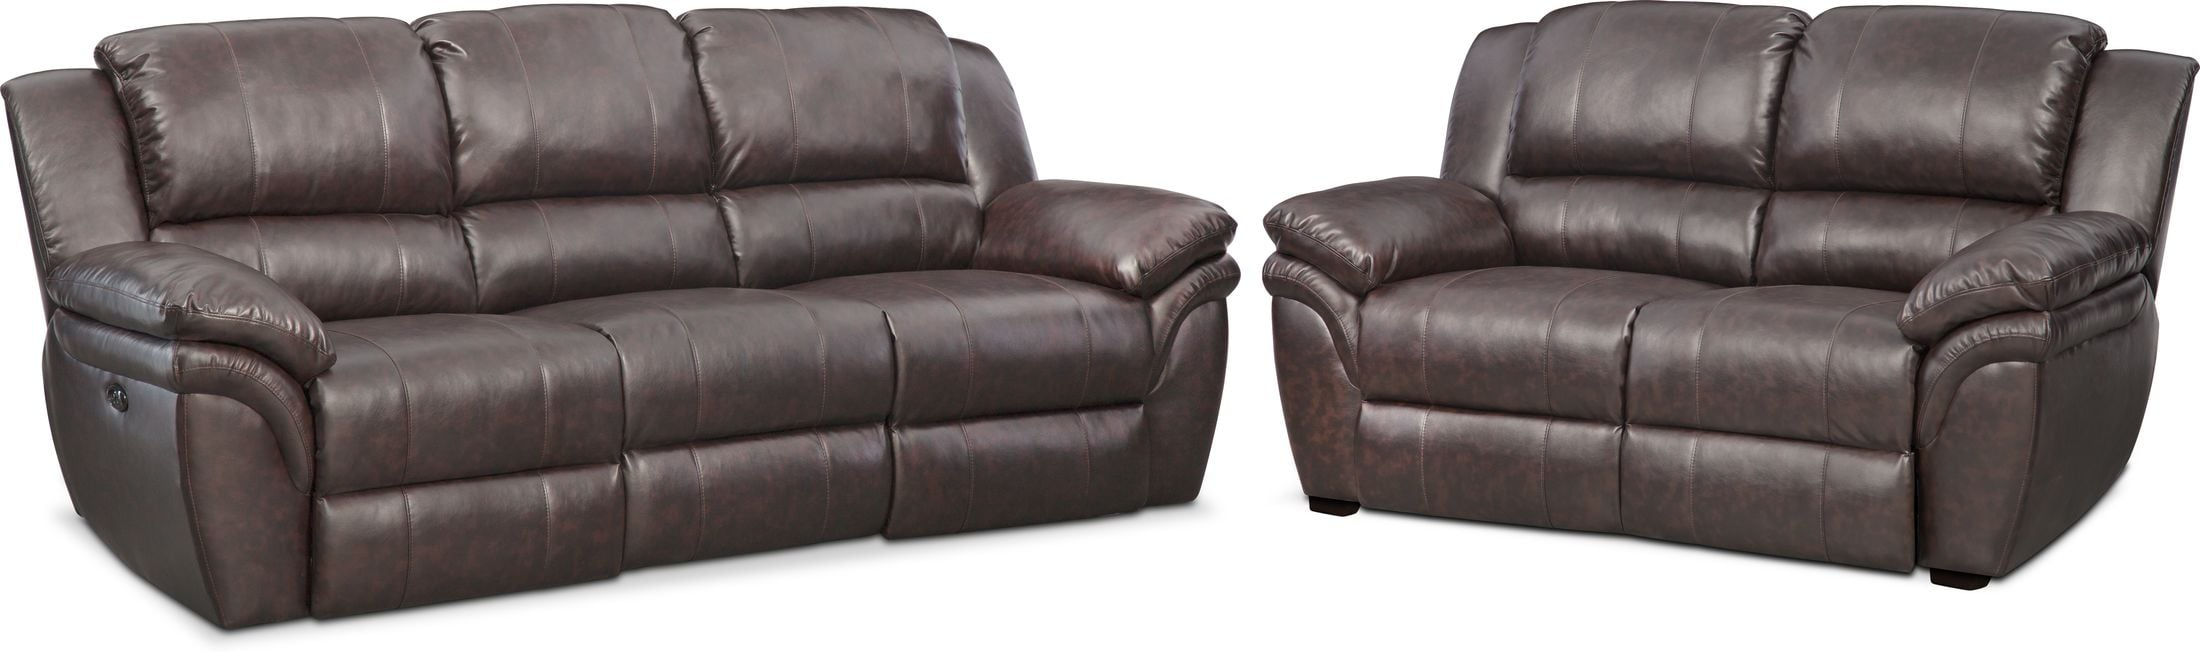 Living Room Furniture - Aldo Power Reclining Sofa and Stationary Loveseat Set